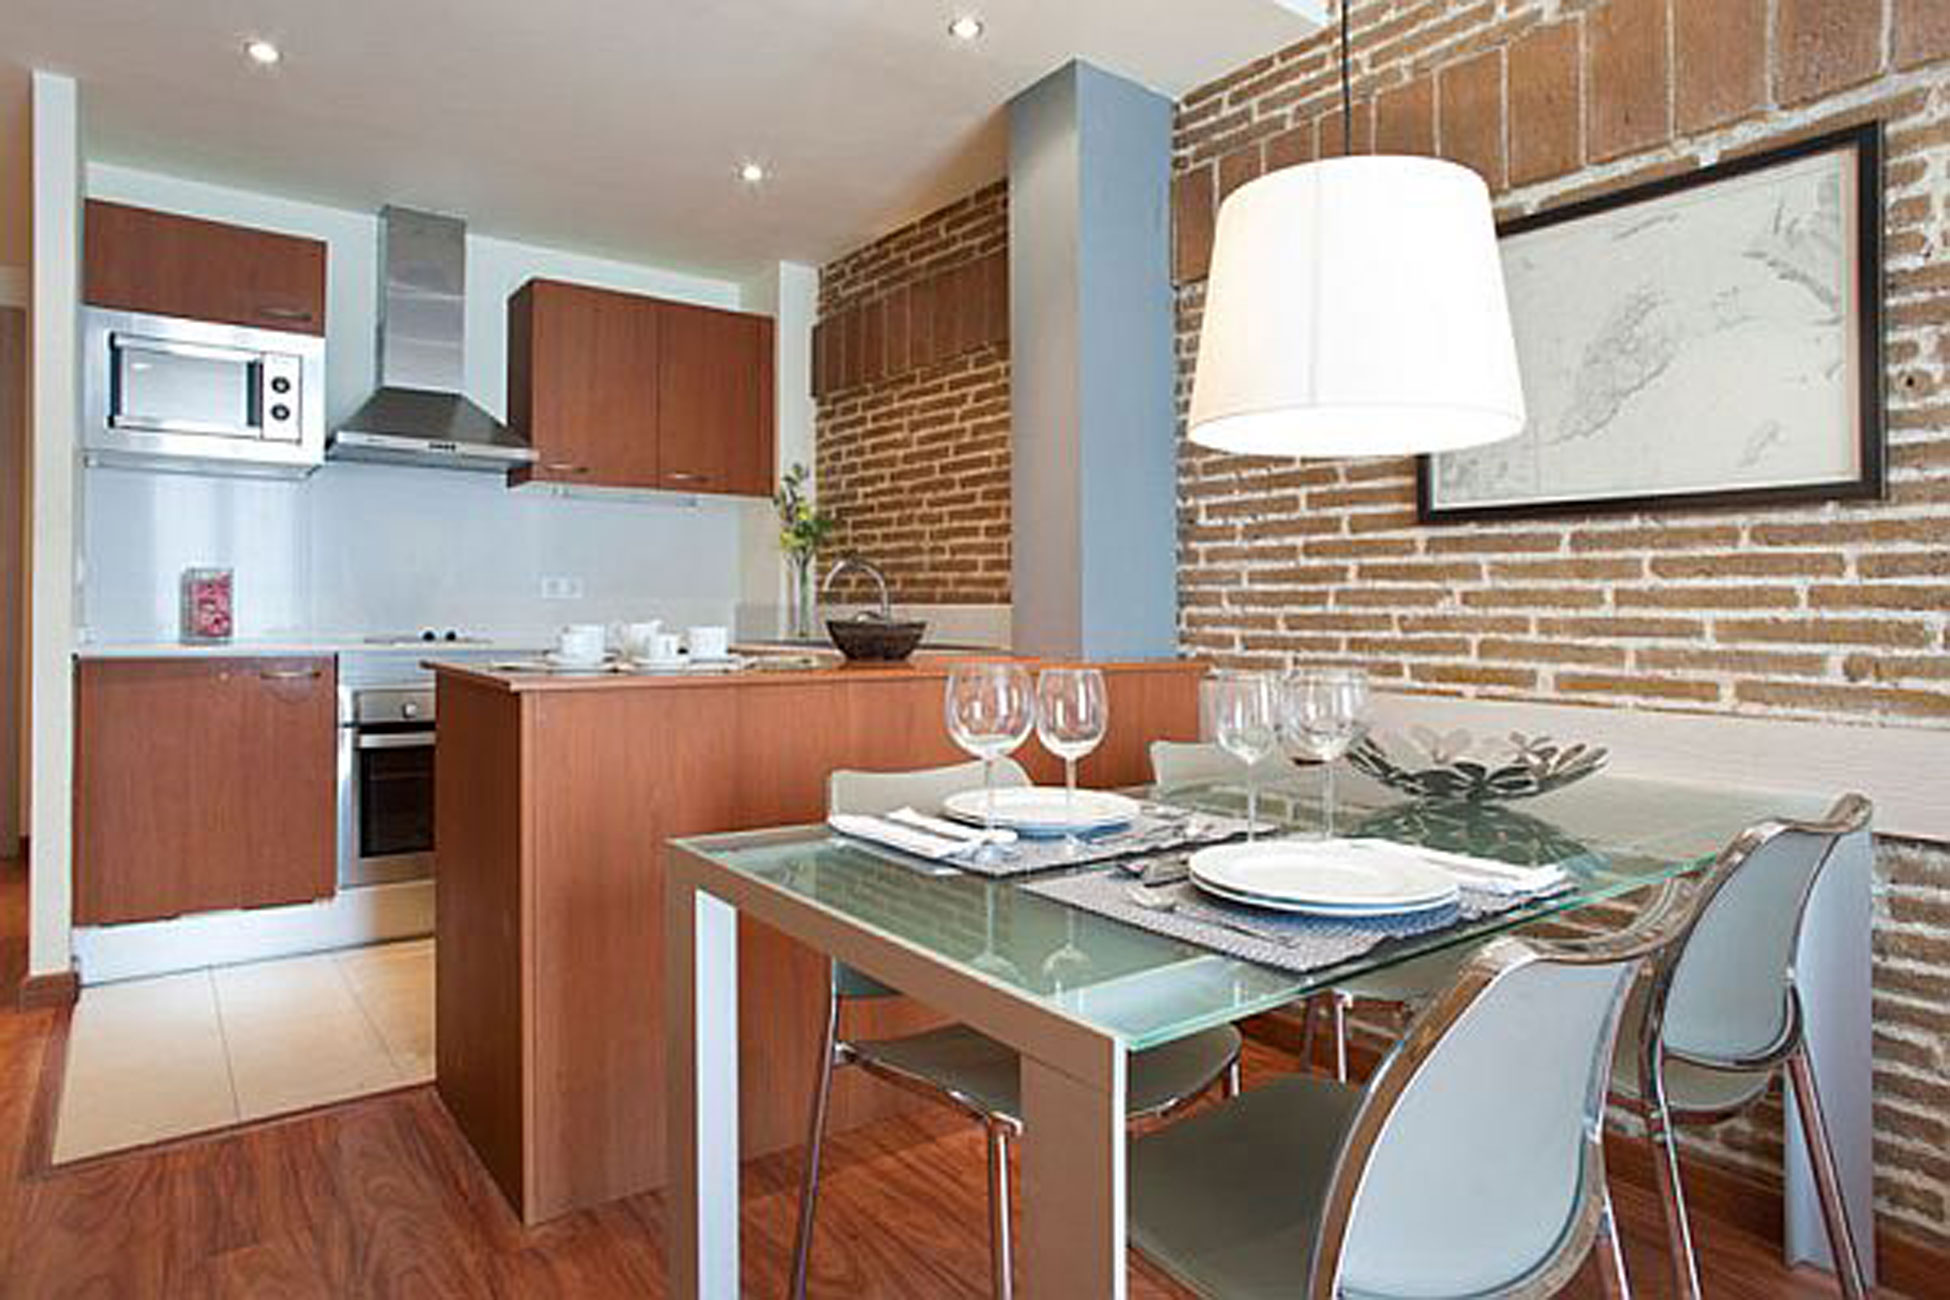 Warmth and Comfy Apartment Ideas In 55 Square Meter of Barcelona ...